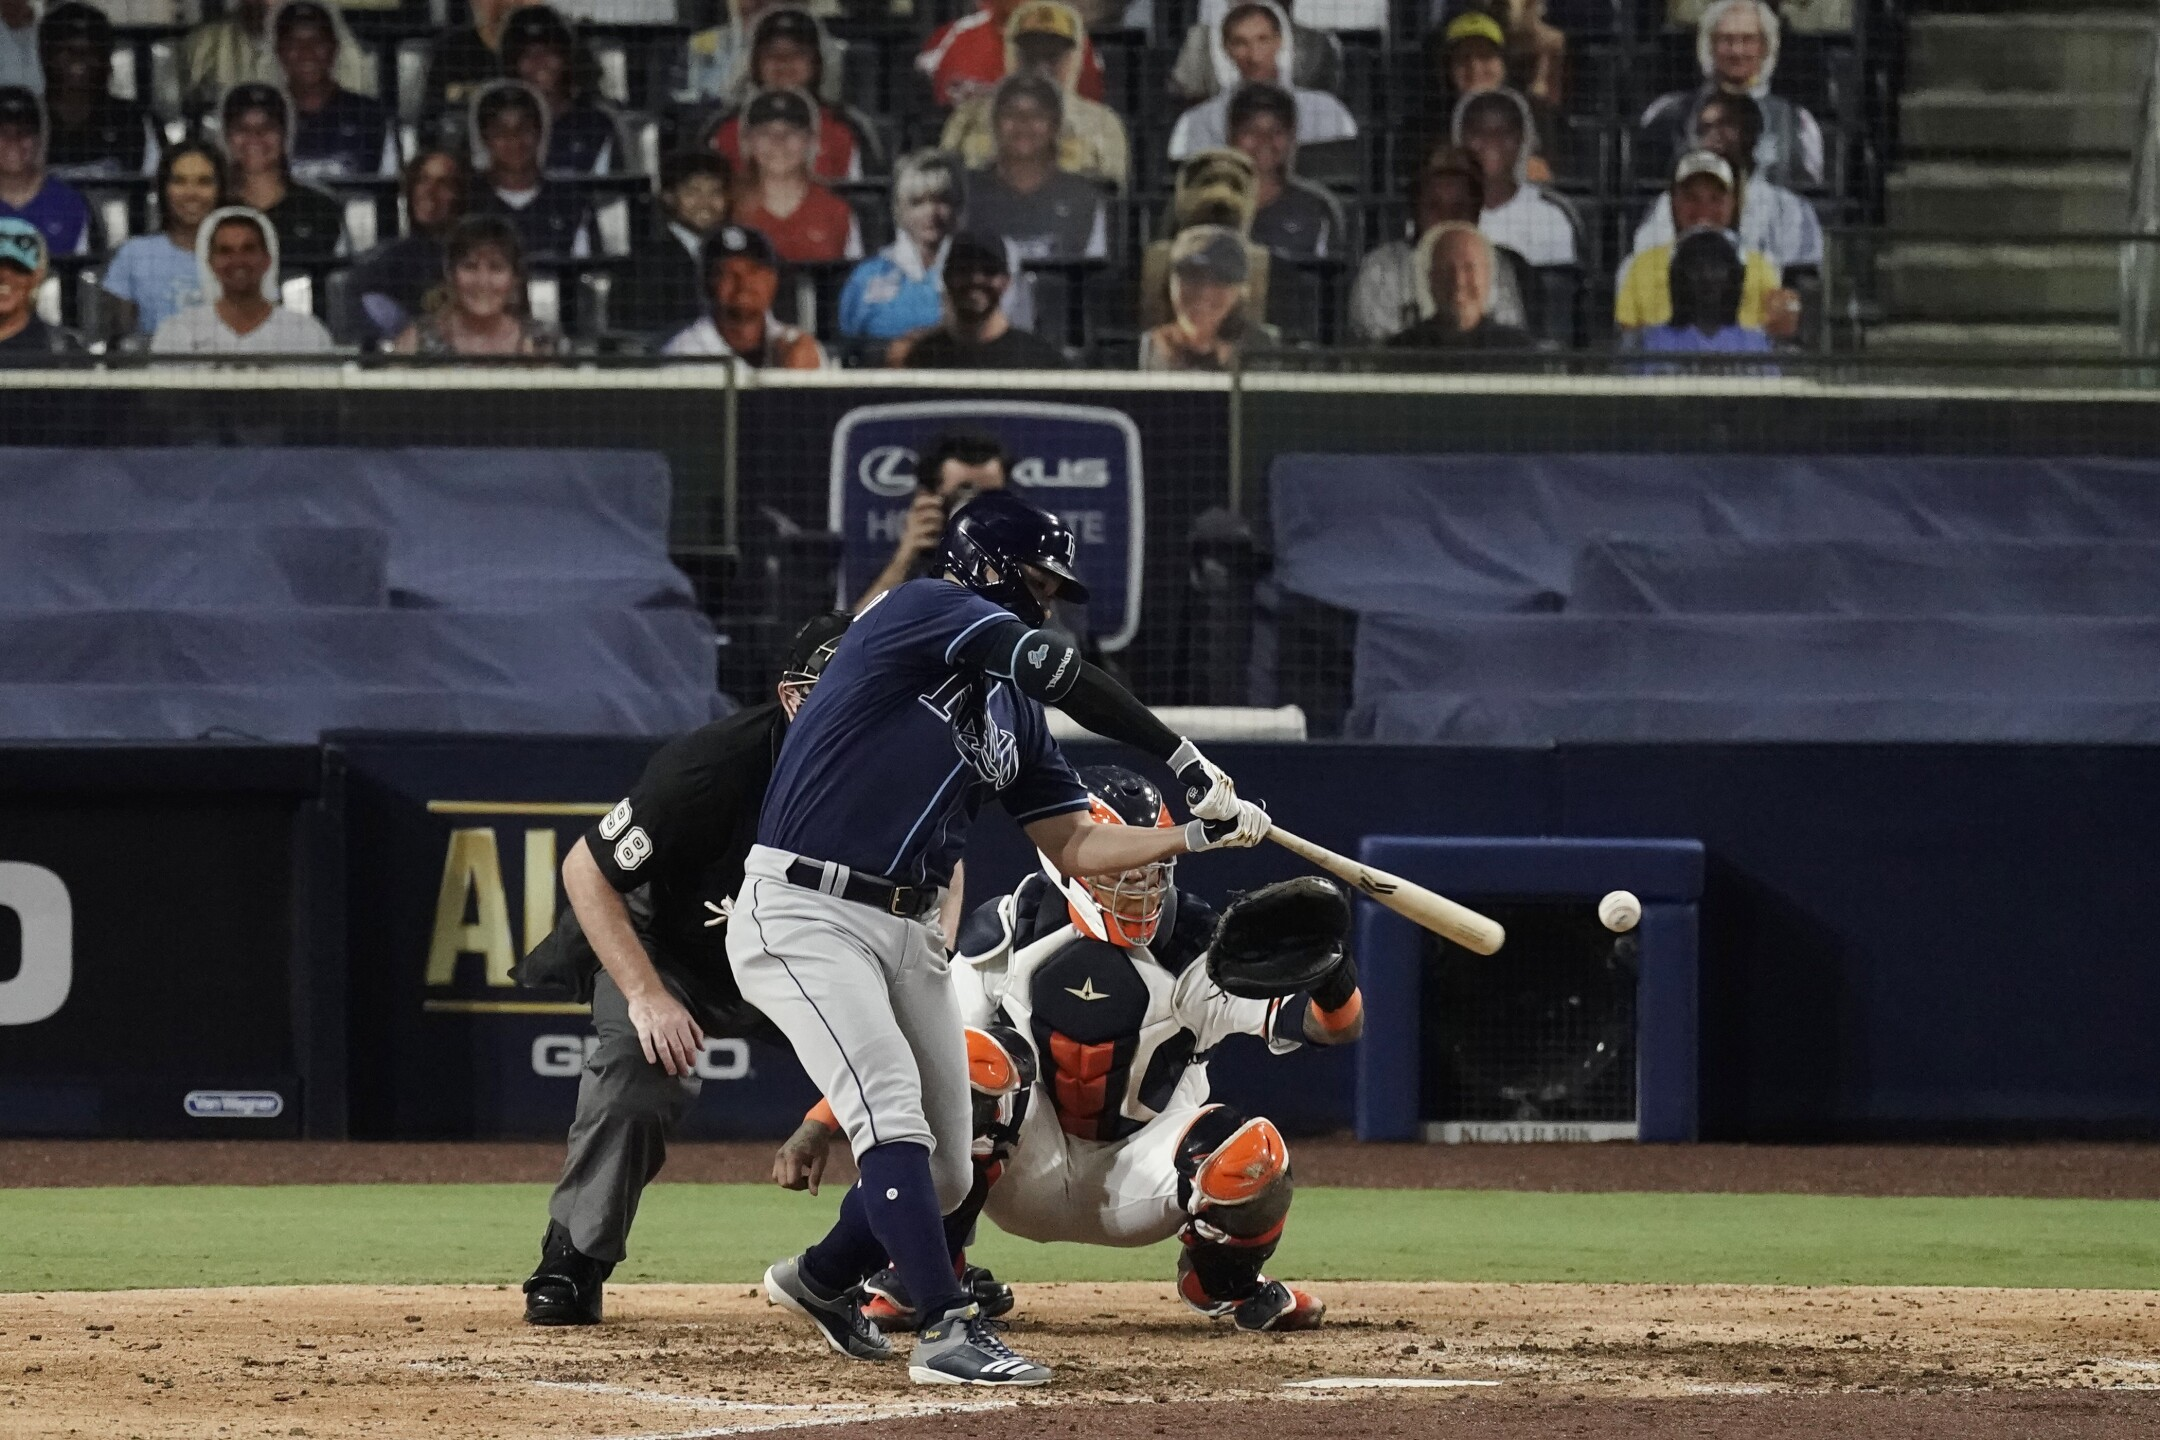 rays-tampa-bay-rays-astros-game-ap-image